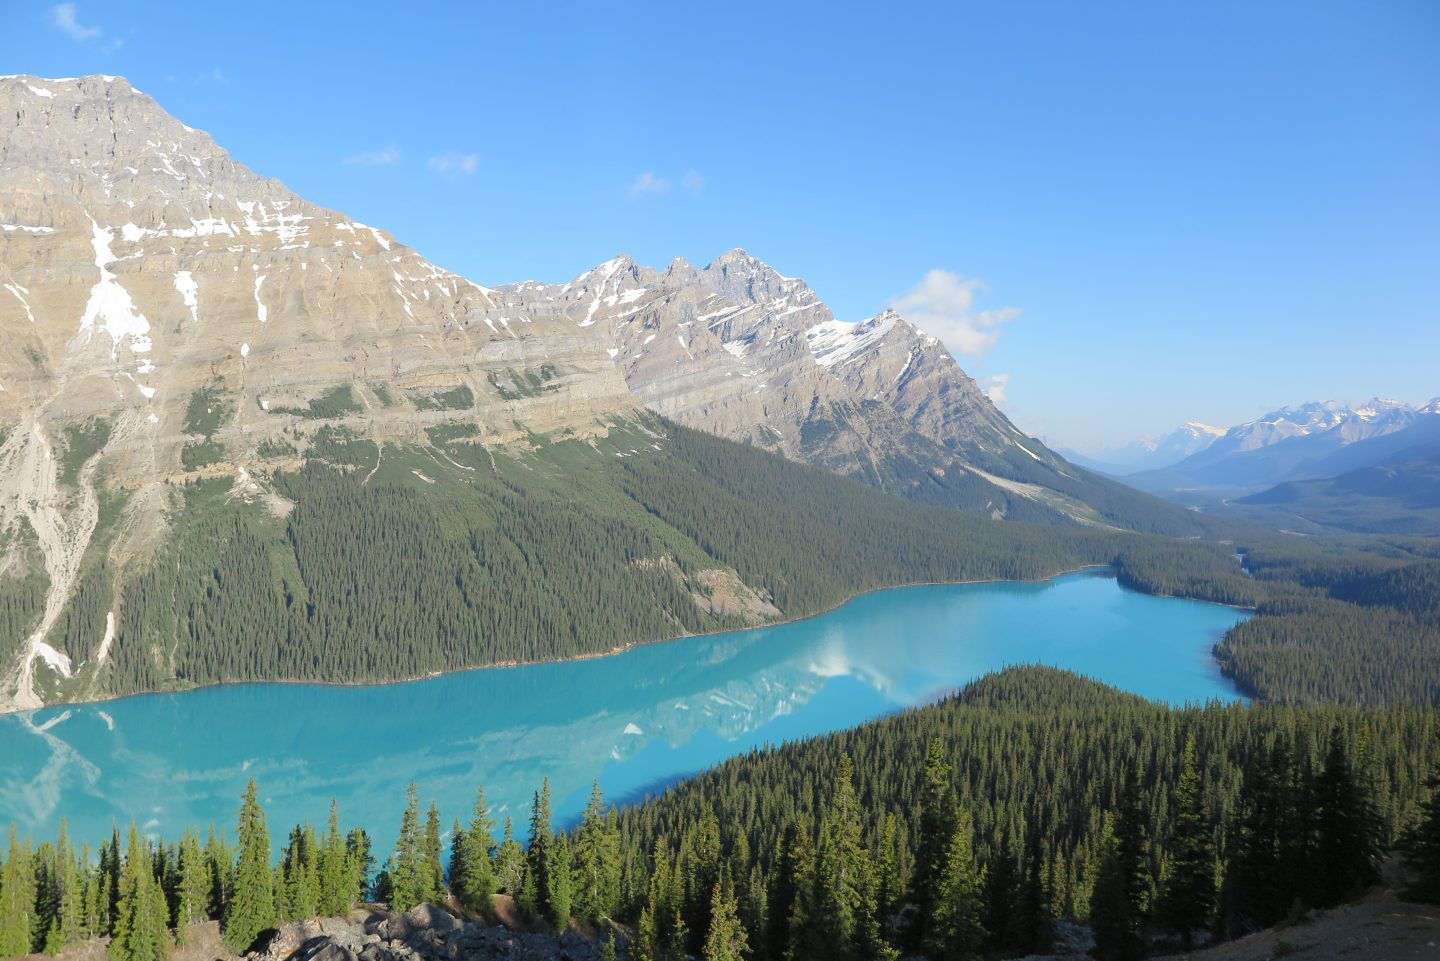 THE BEST LAKES IN THE CANADIAN ROCKIES